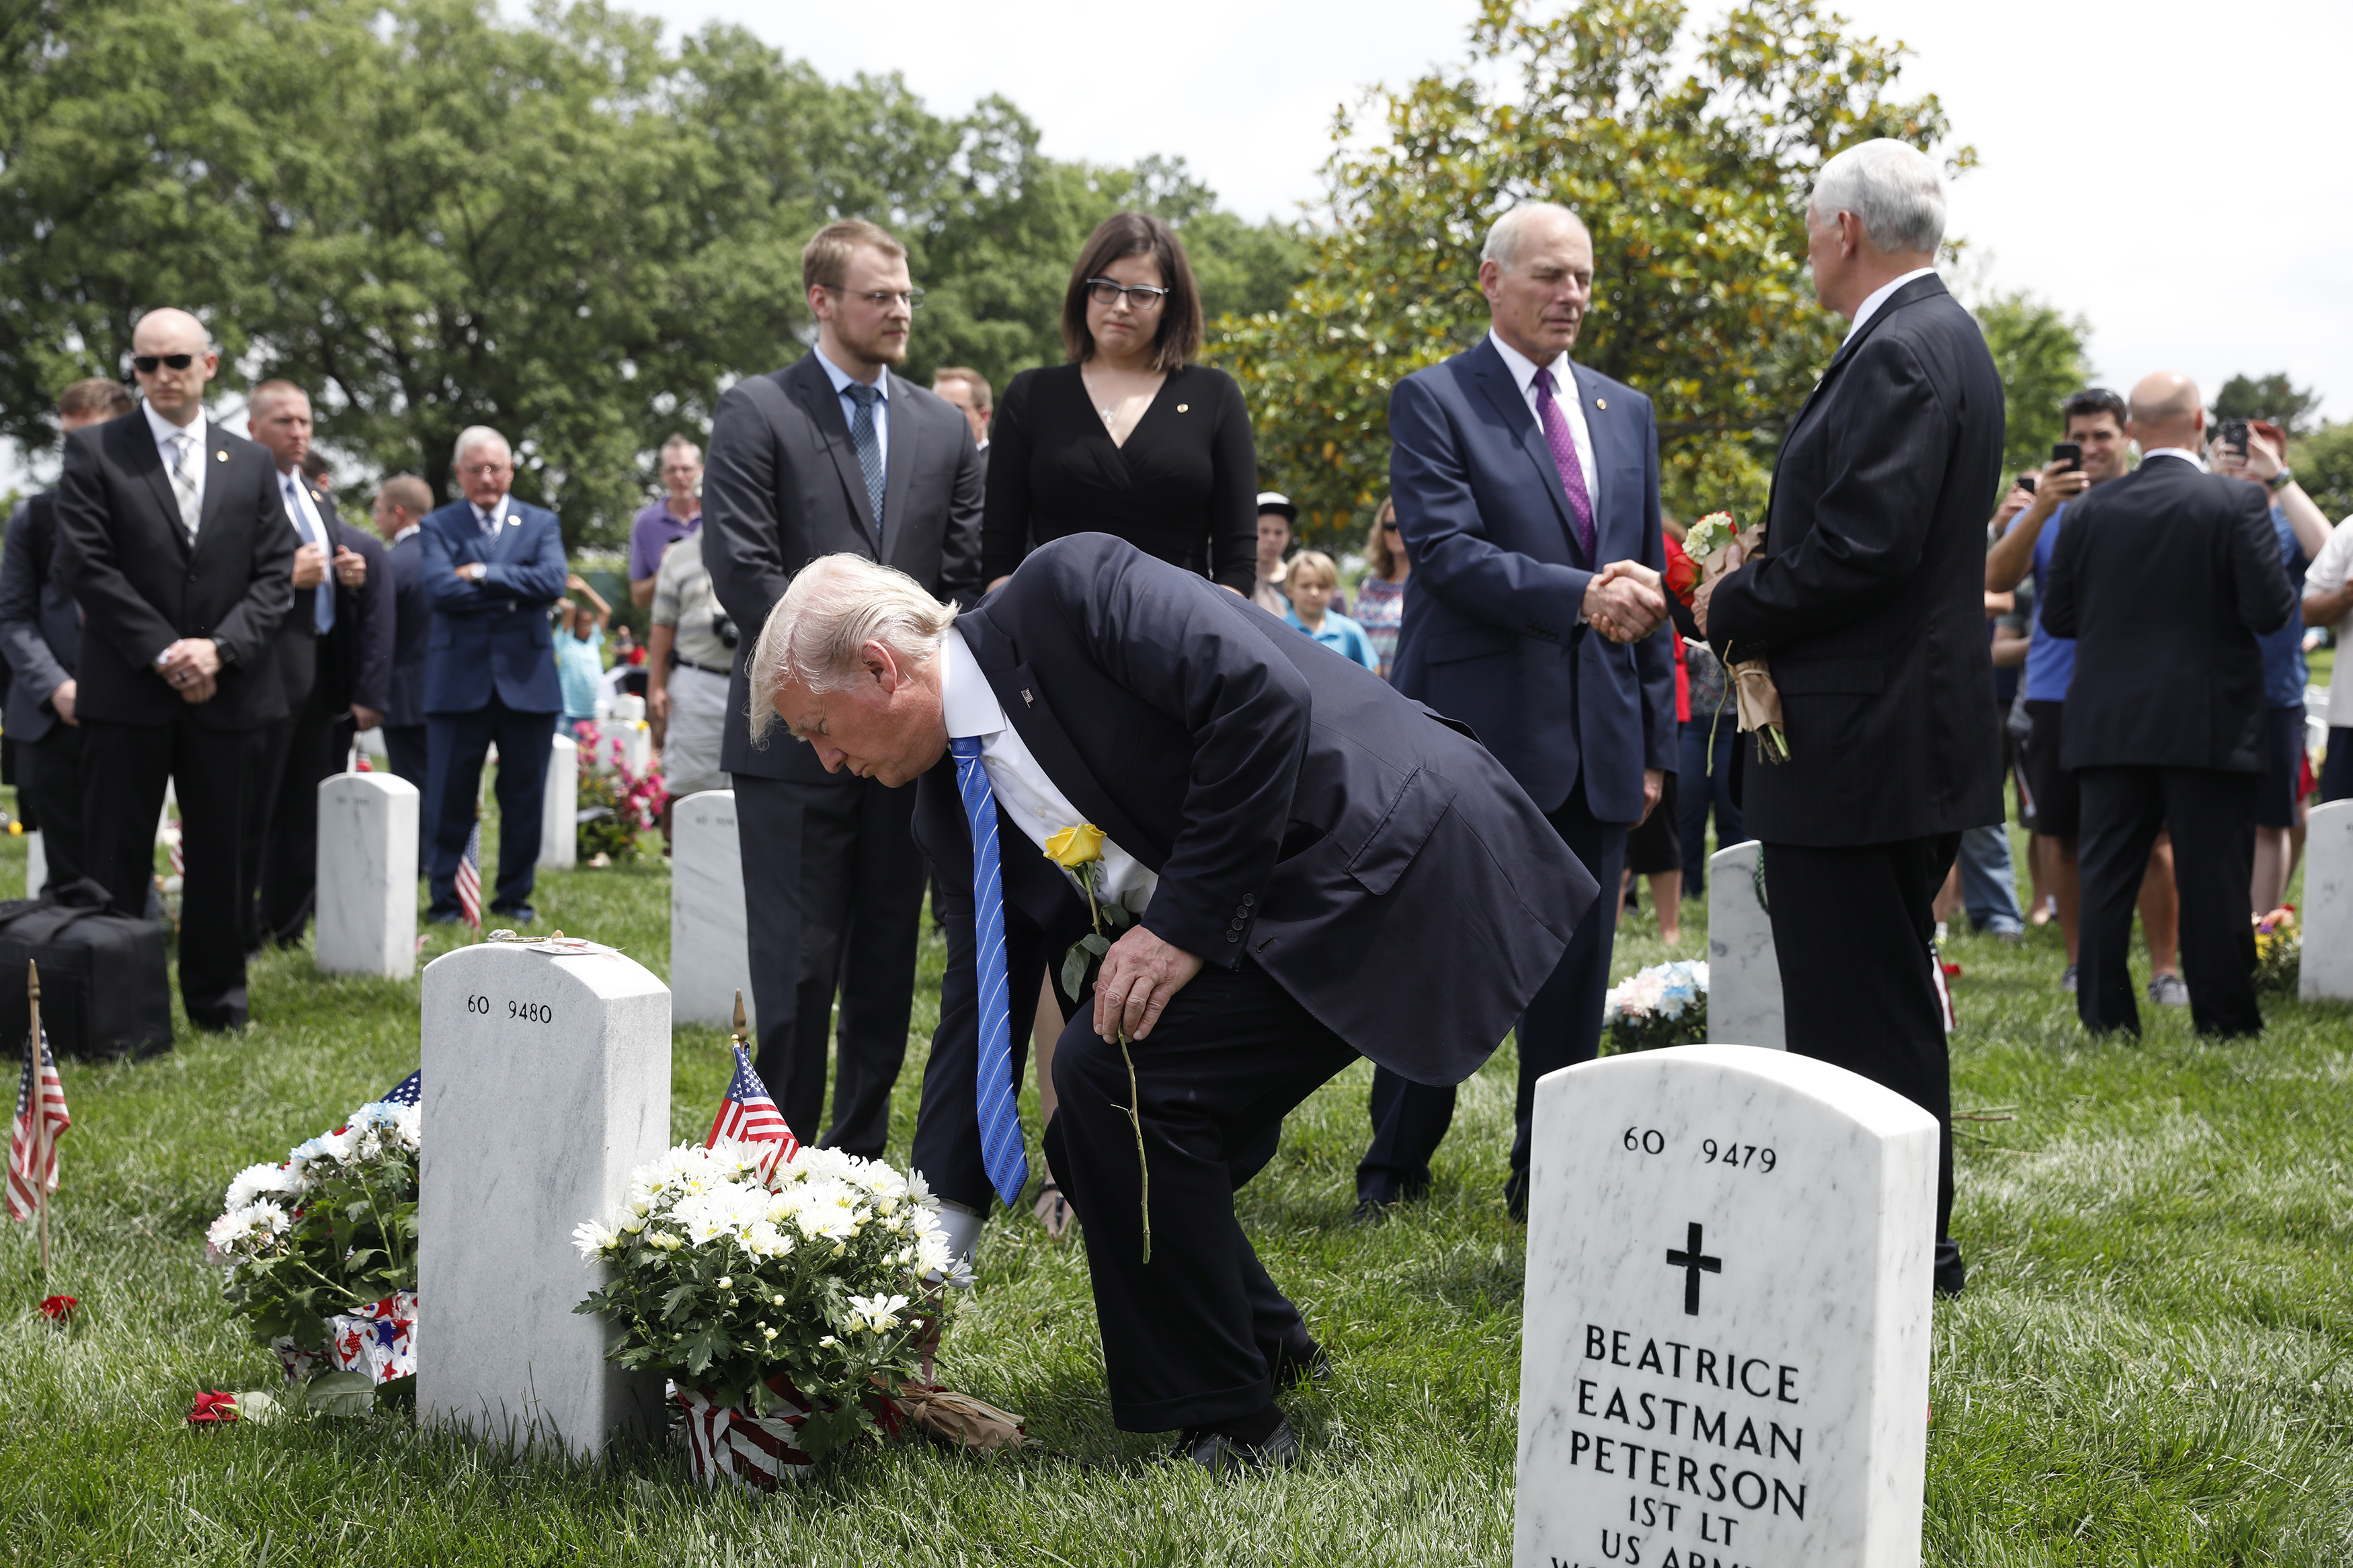 As Vice President Mike Pence and White House Chief of Staff John Kelly shake hands, President Donald Trump lays flowers on the grave of Kelly's son Robert at Arlington National Cemetery on May 29, 2017 in Arlington, Virginia. Marine Lieutenant Robert Kelly was killed in 2010 while leading a patrol in Afghanistan